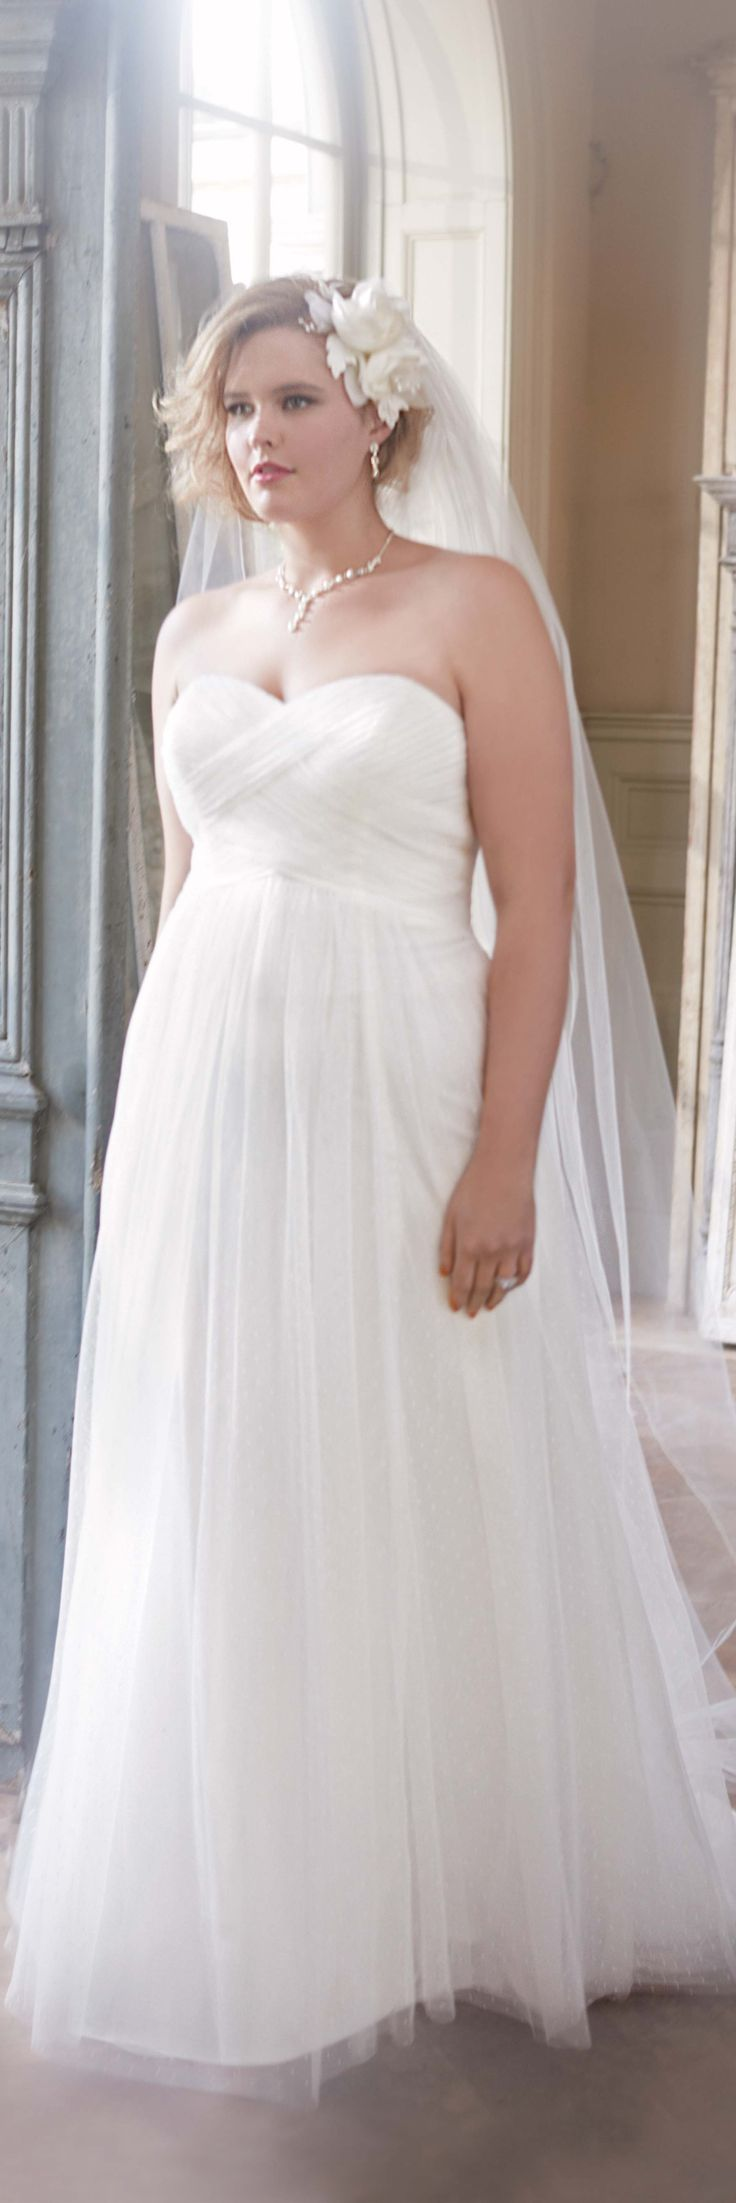 Read about beautiful wedding dresses for plus size apple shape women (photo David's Bridal) - click to read: http://www.boomerinas.com/2014/10/08/wedding-dresses-for-your-body-type-apple-shapes-plus-size-tummies/